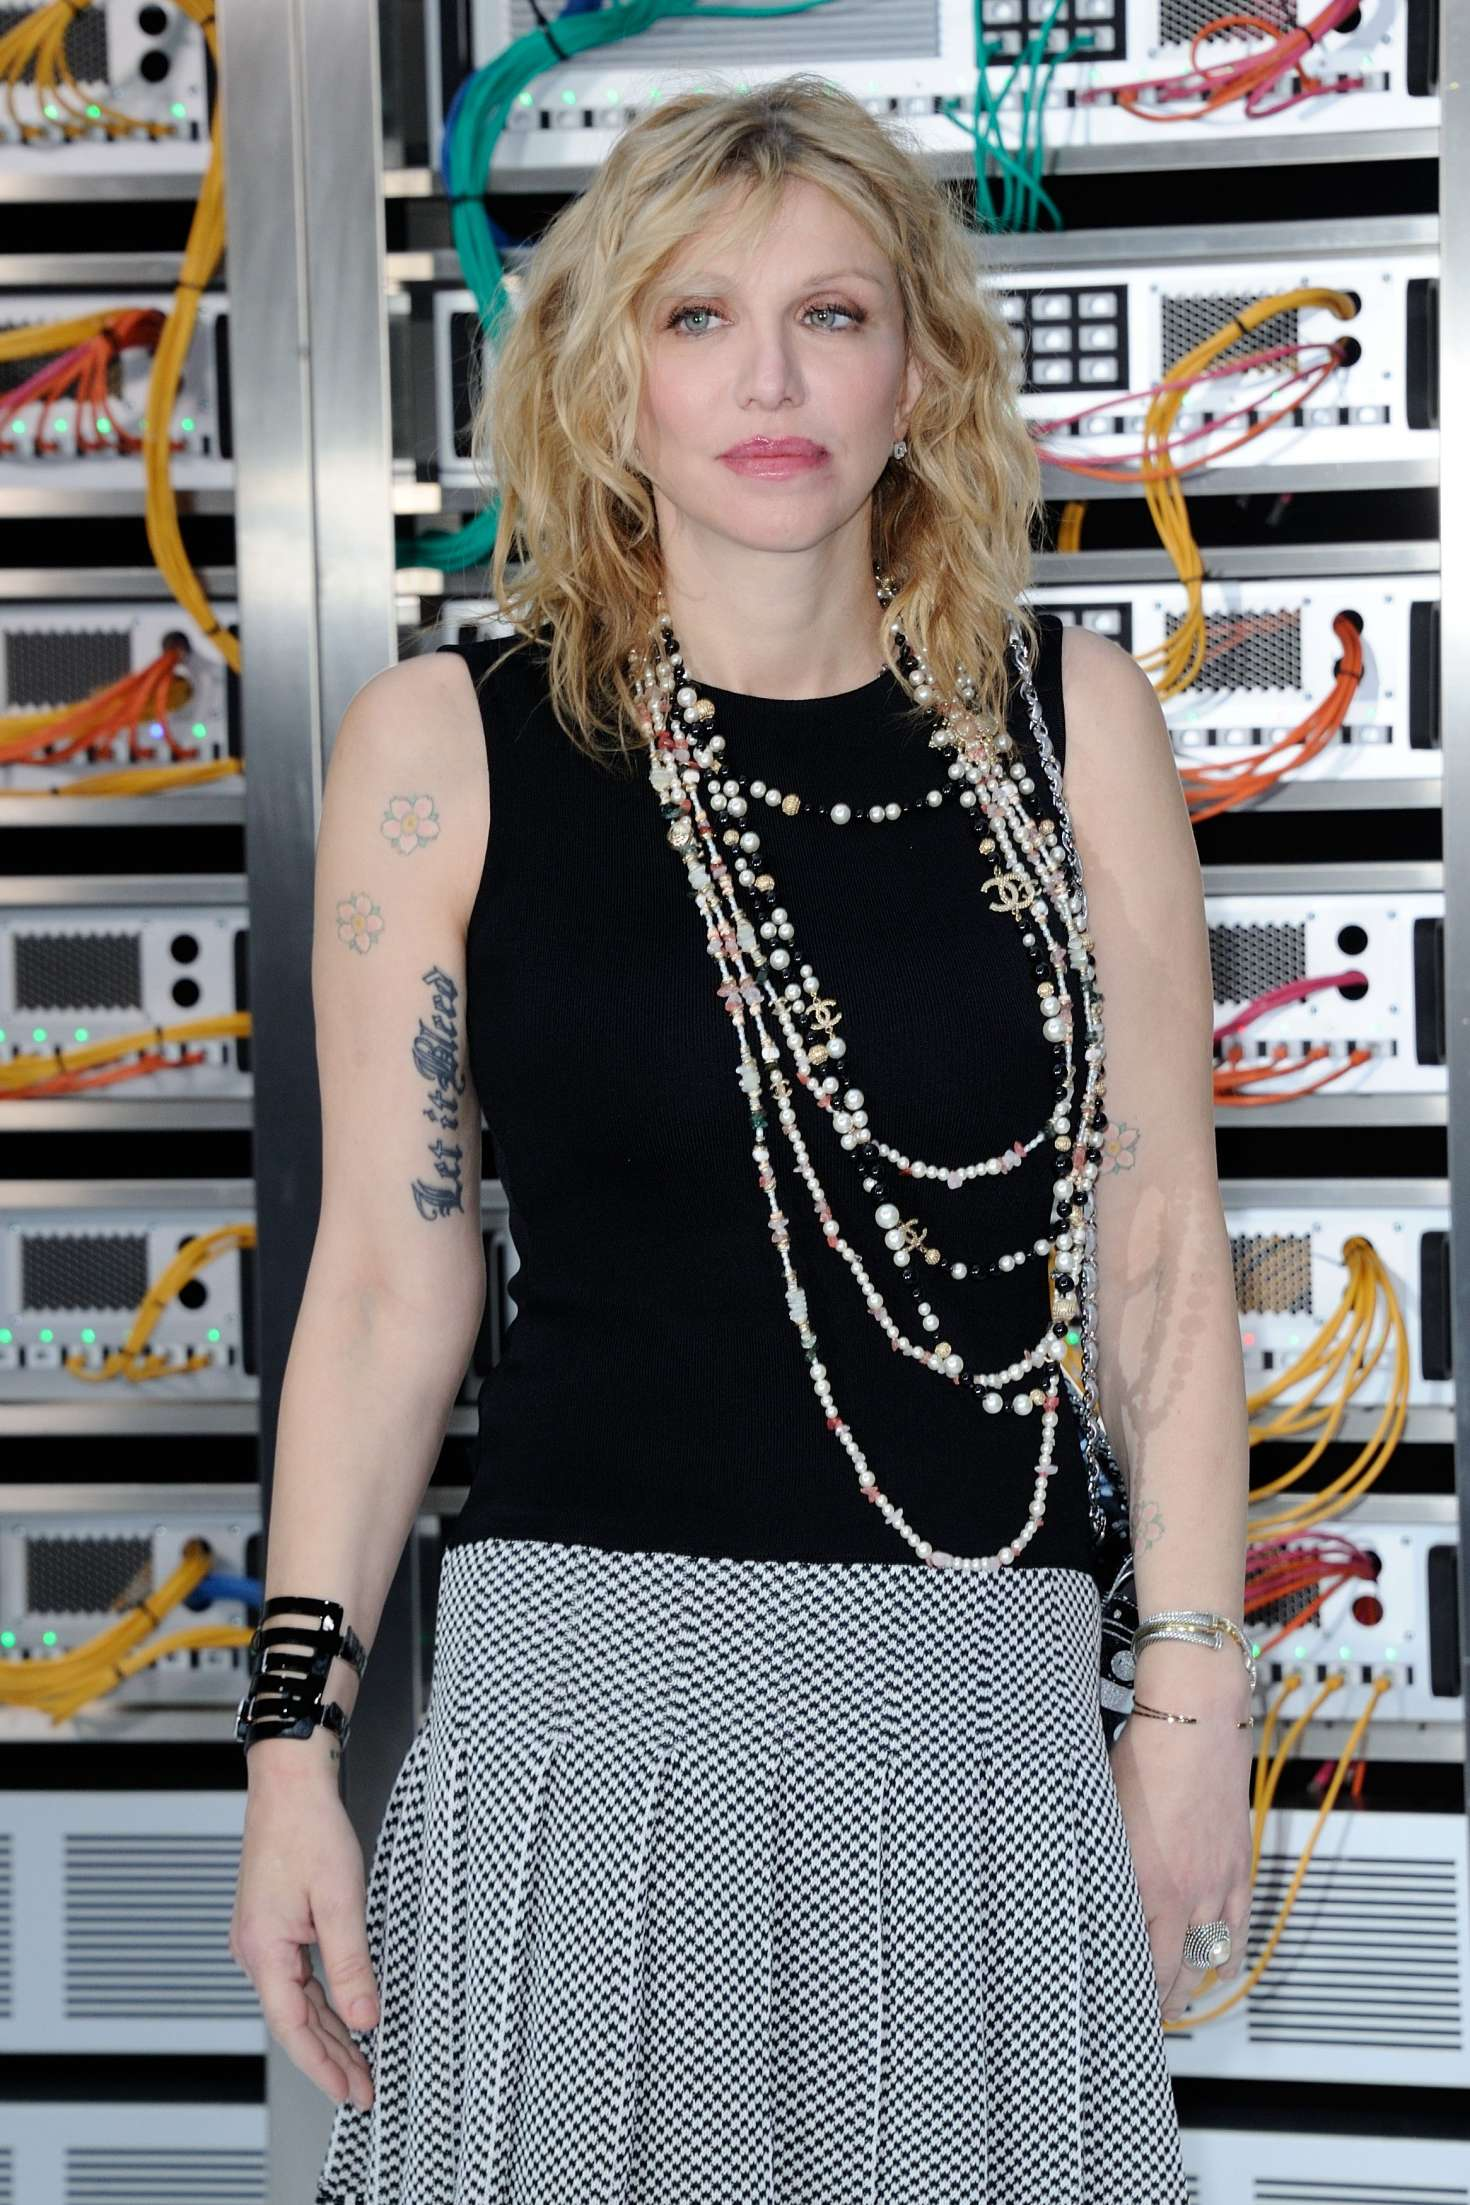 Courtney Love s bizarre style blog Music The Guardian 19